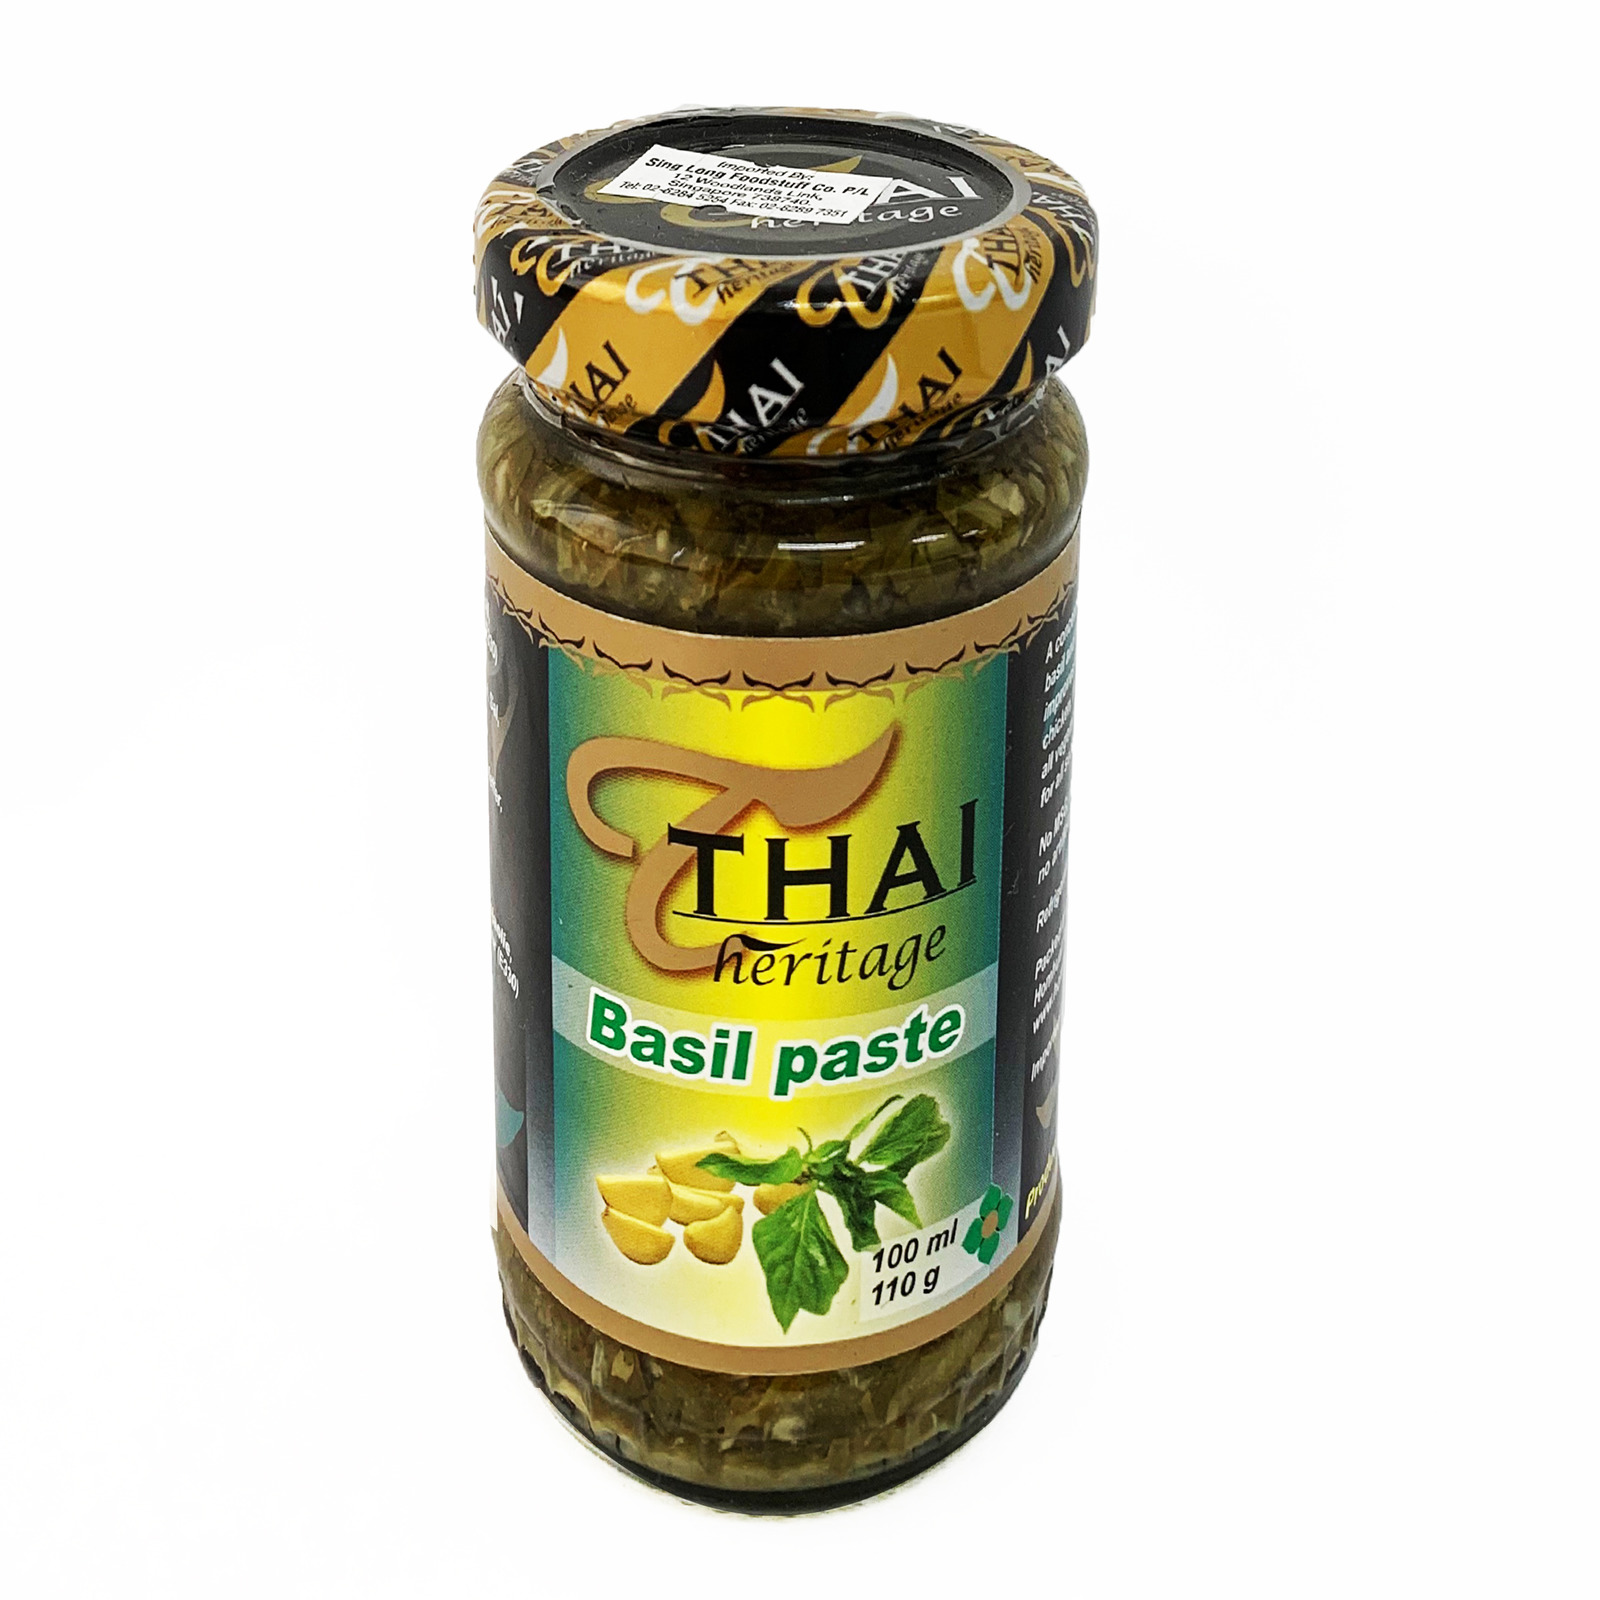 THAI HERITAGE Basil Paste